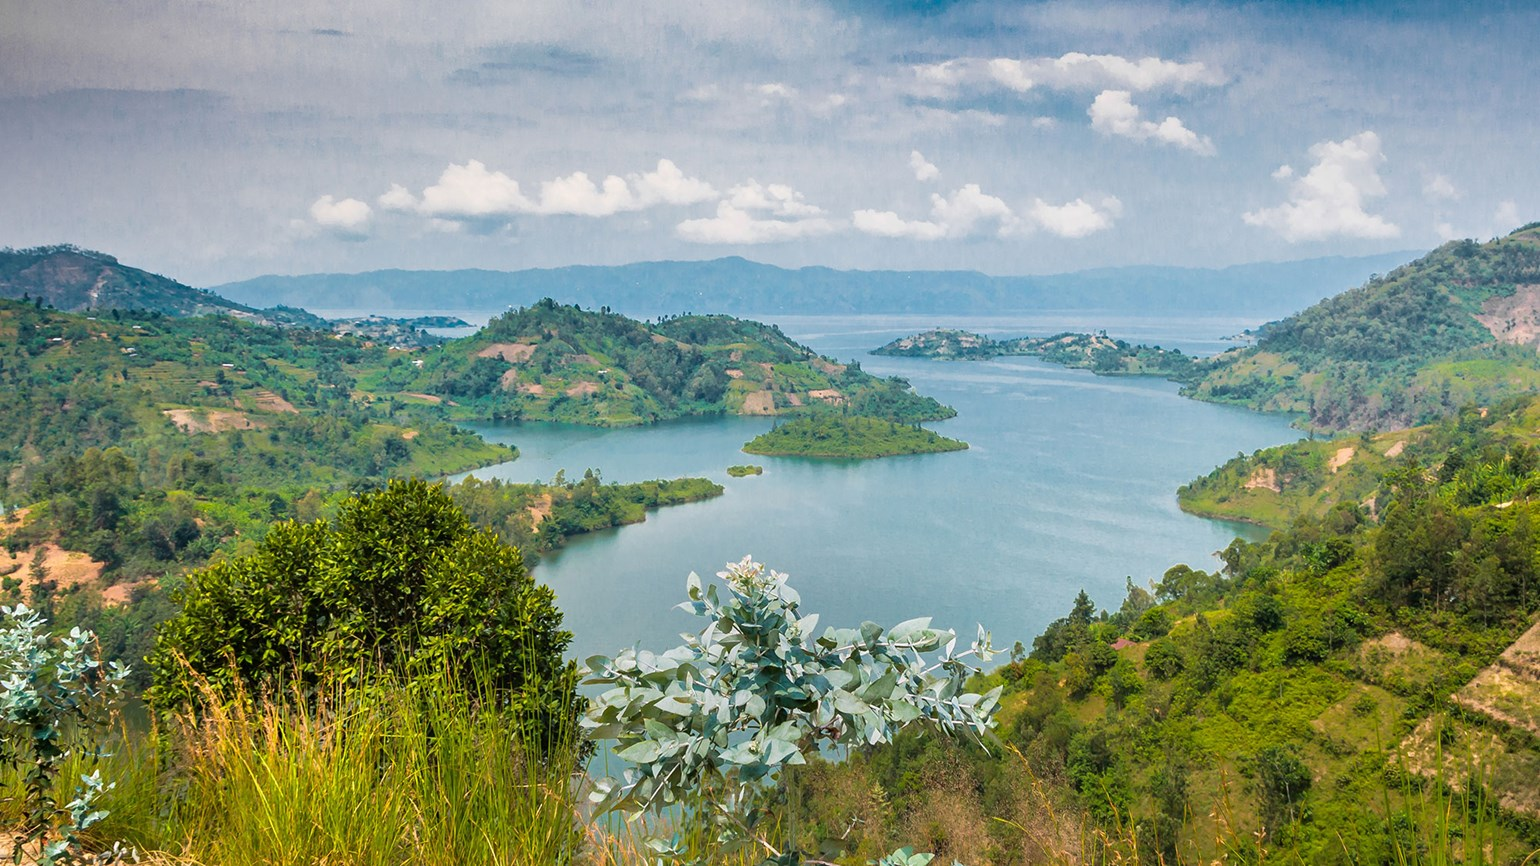 Rwanda's Lake Kivu a worthy follow-up to an unforgettable gorilla trek